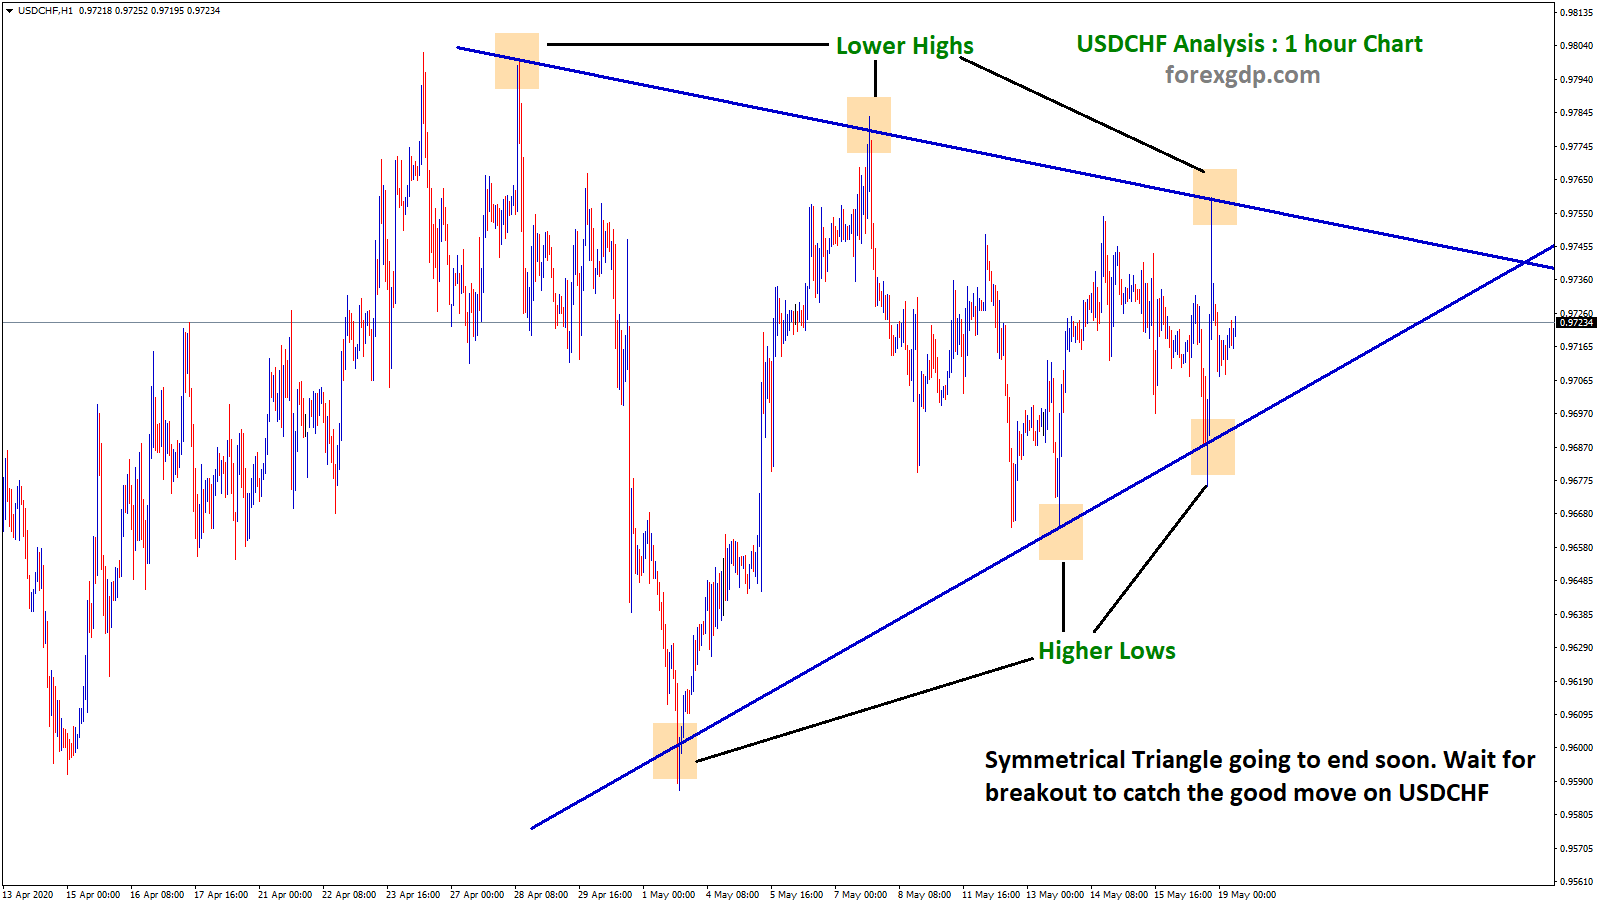 usdchf symmetrical triangle waiting for breakout